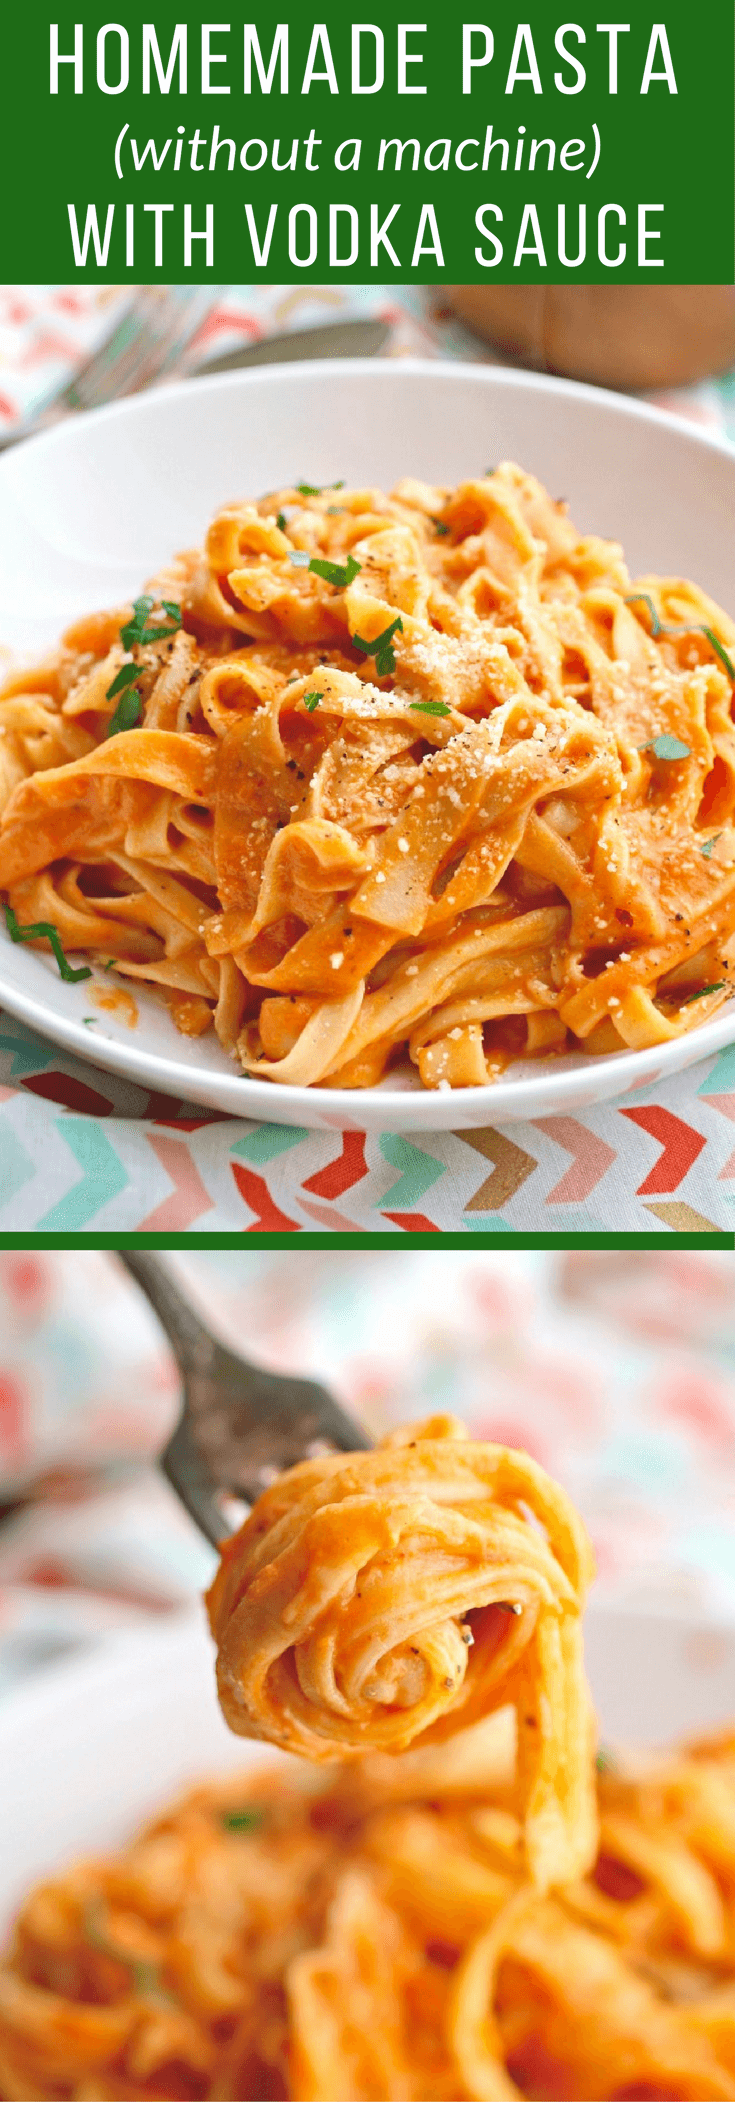 Homemade Pasta Without A Machine With Vodka Sauce Recipe Homemade Pasta Recipe Homemade Pasta Vodka Sauce